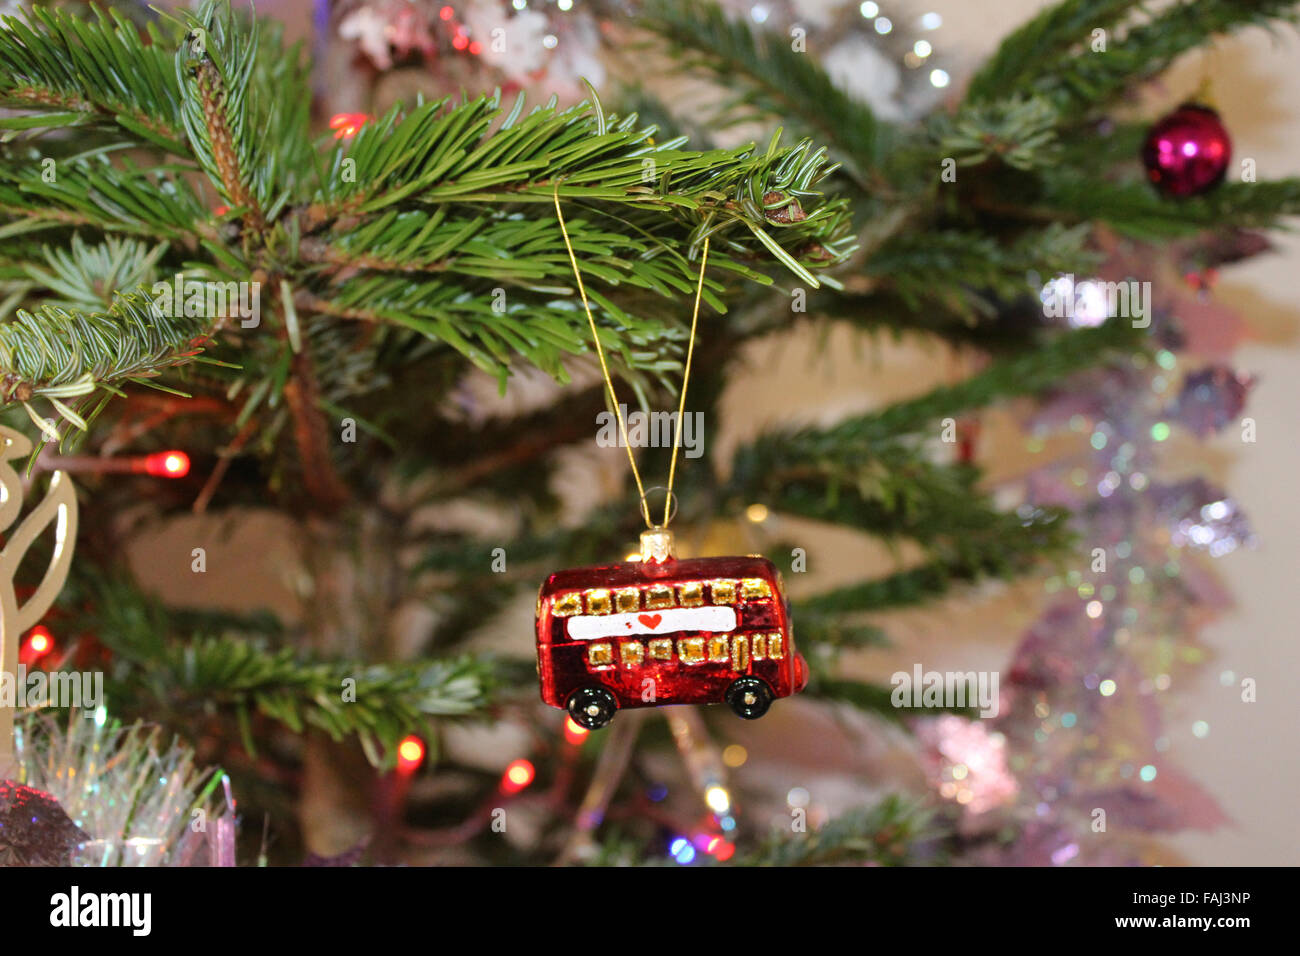 A London bus Christmas decoration hangs from a Christmas tree